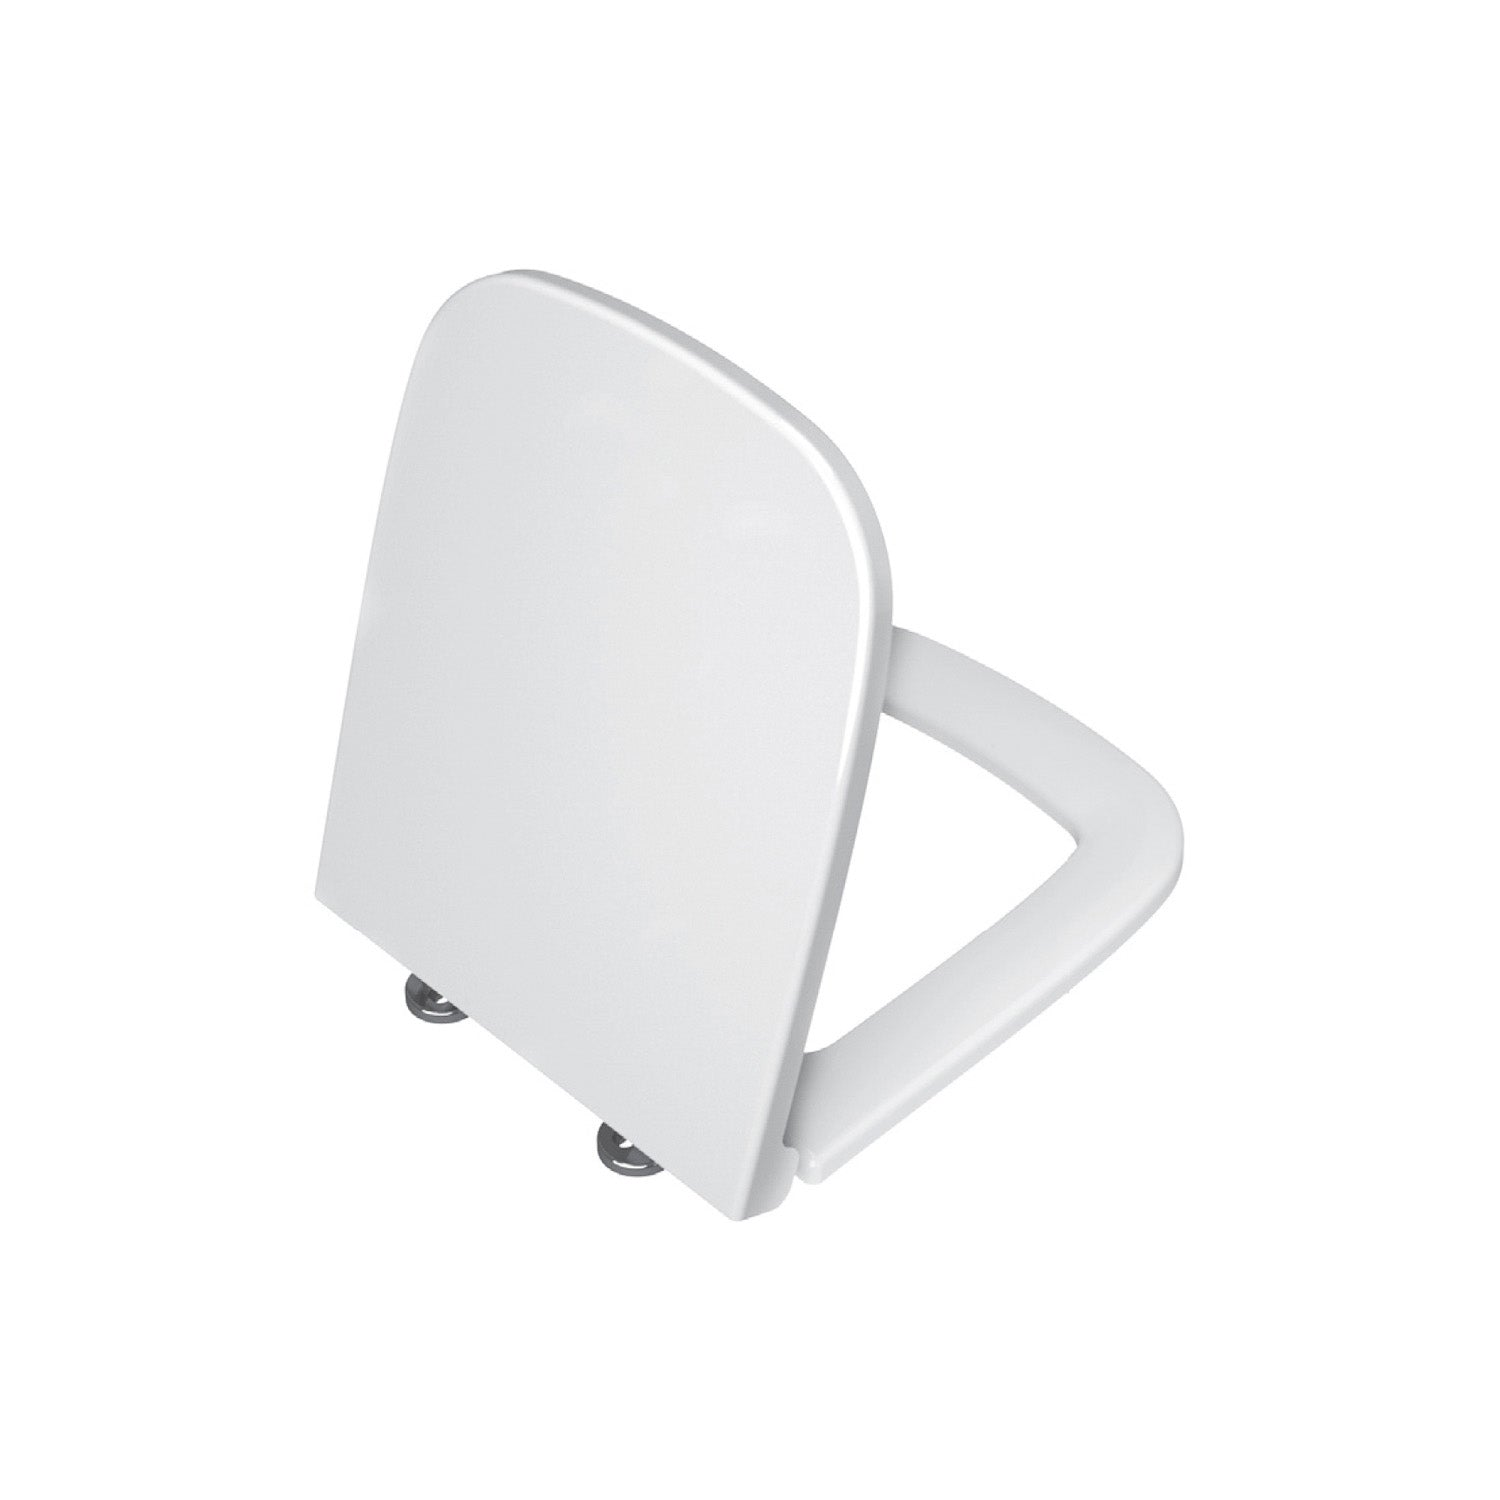 Consilio Close Coupled Toilet Seat and Cover on a white background